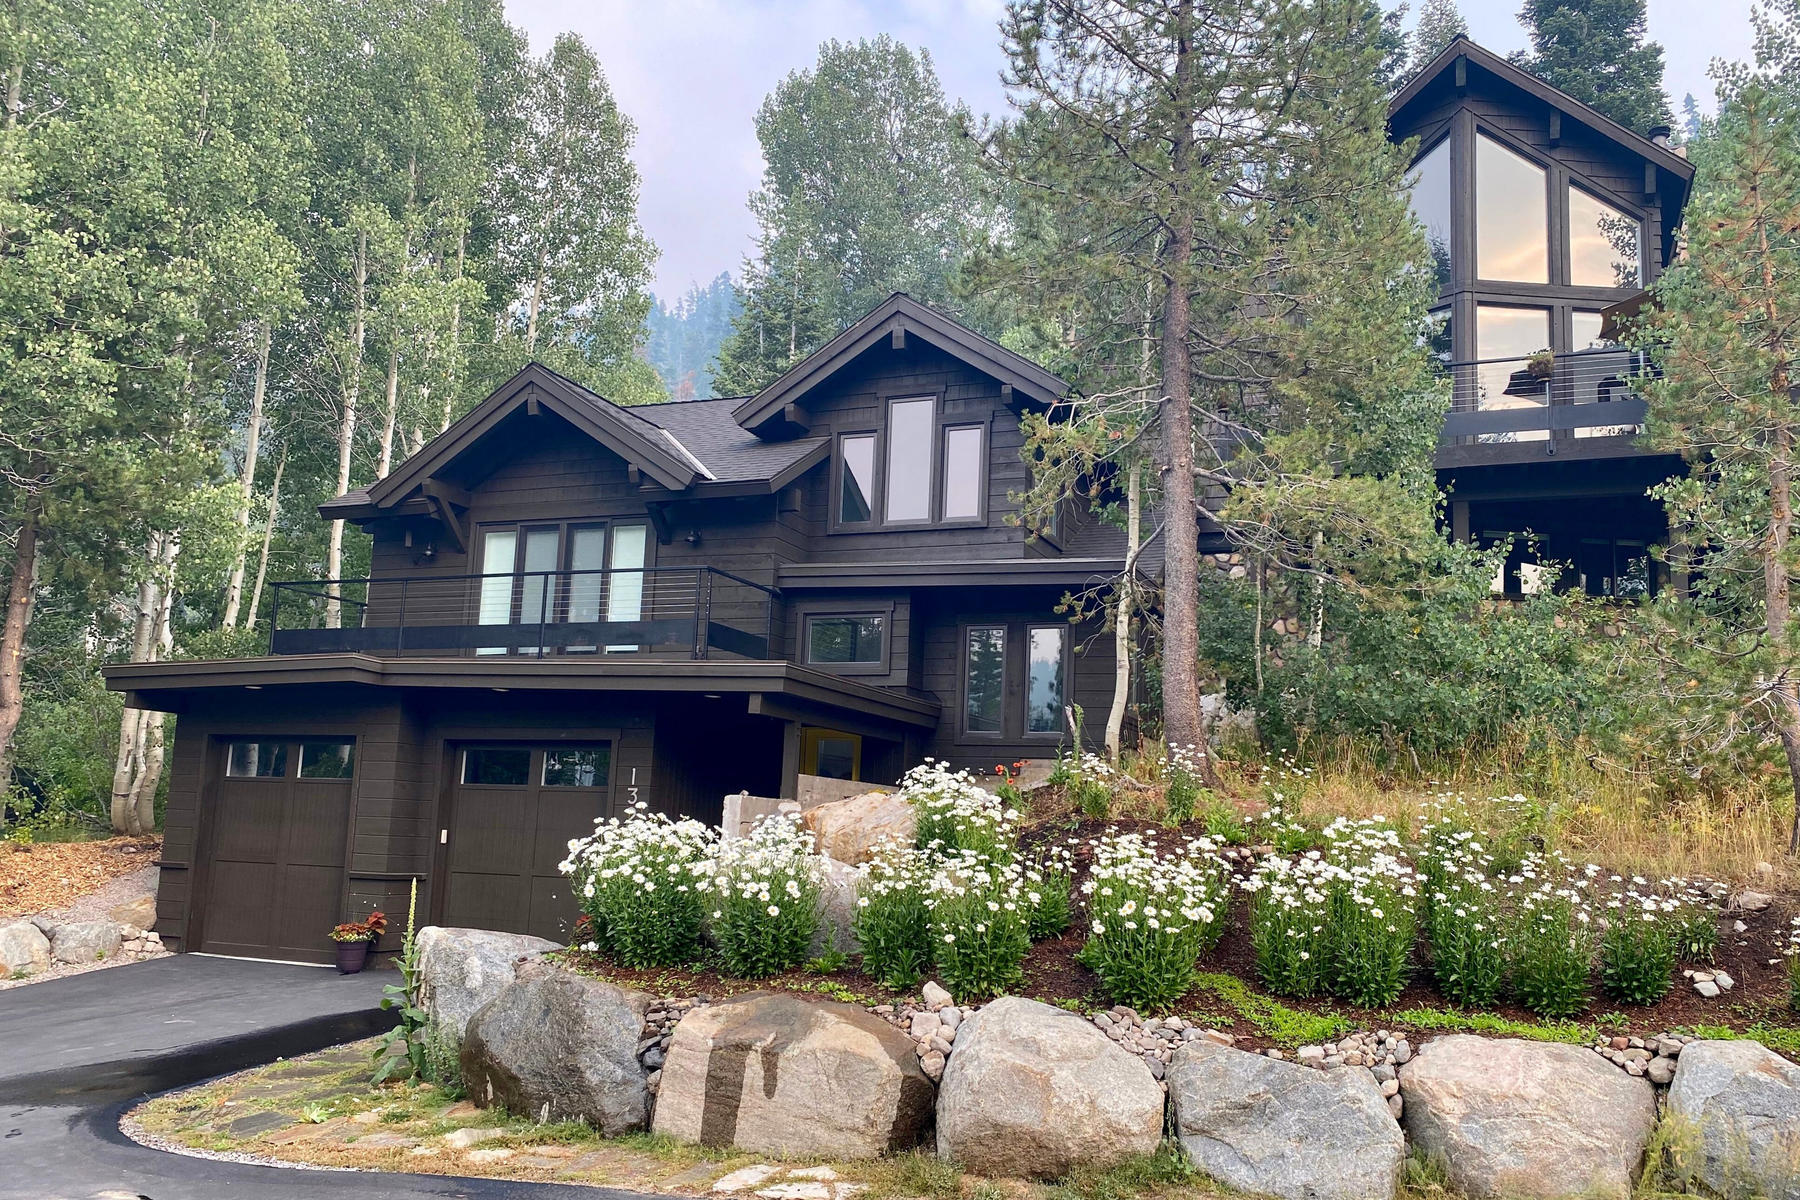 Property for Active at Alpine Meadows Scandinavian Modern 1329 Pine Trail Alpine Meadows, California 96146 United States